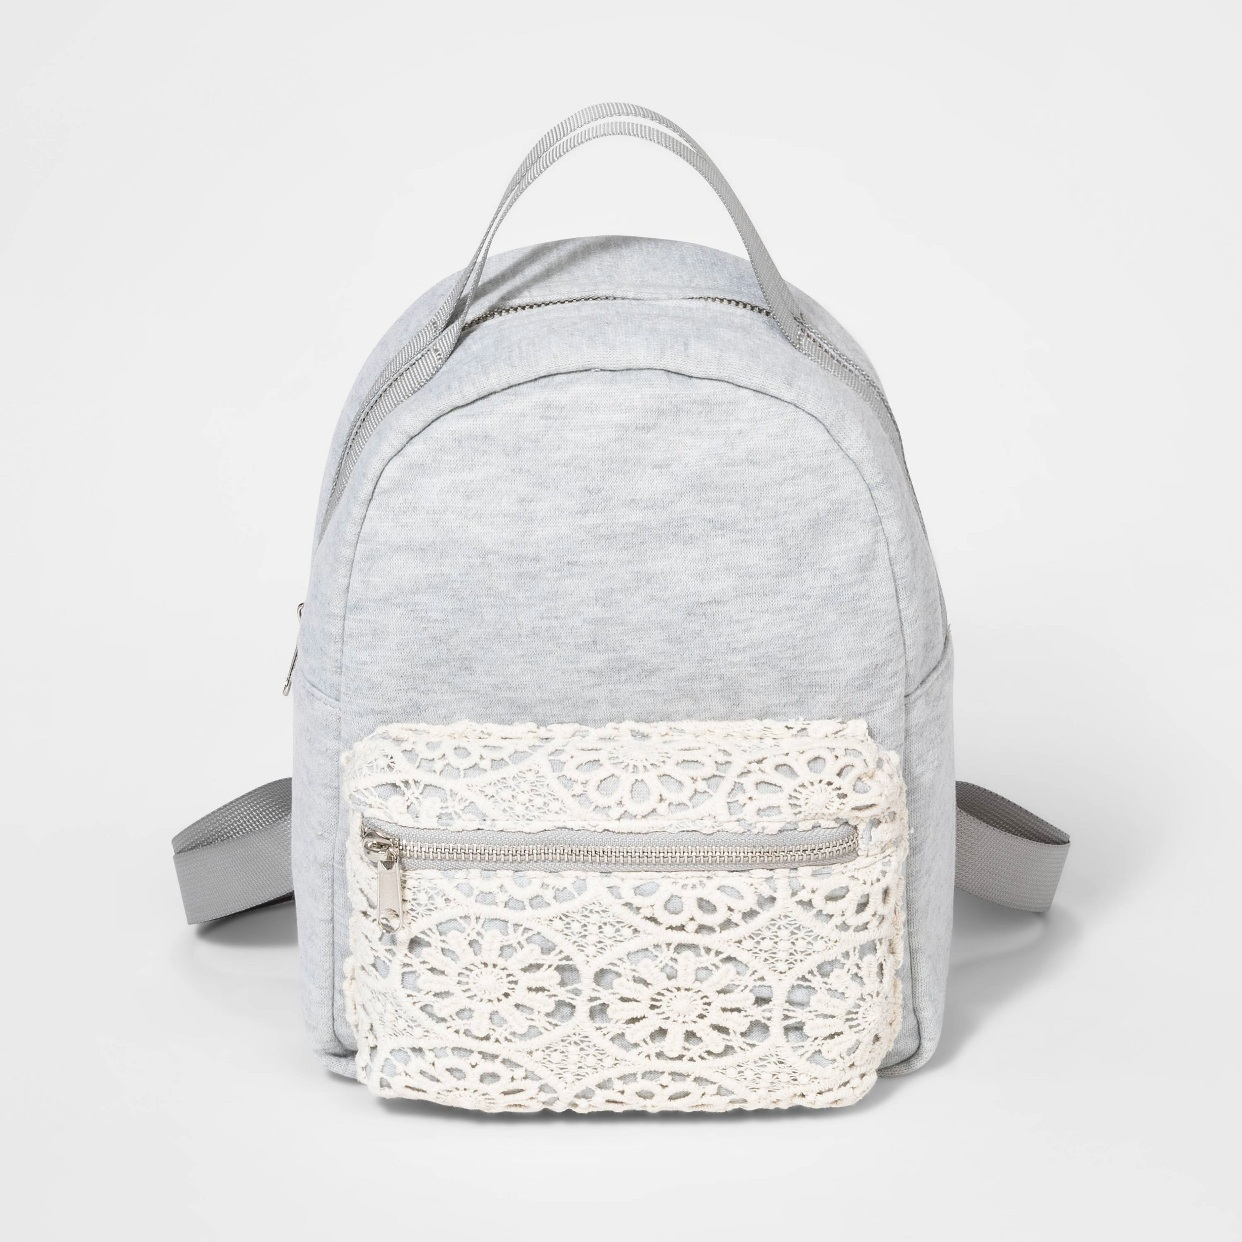 - Is it too soon for back to school shopping? This backpack is just the right size for Caroline for preschool in the fall!Find it here.